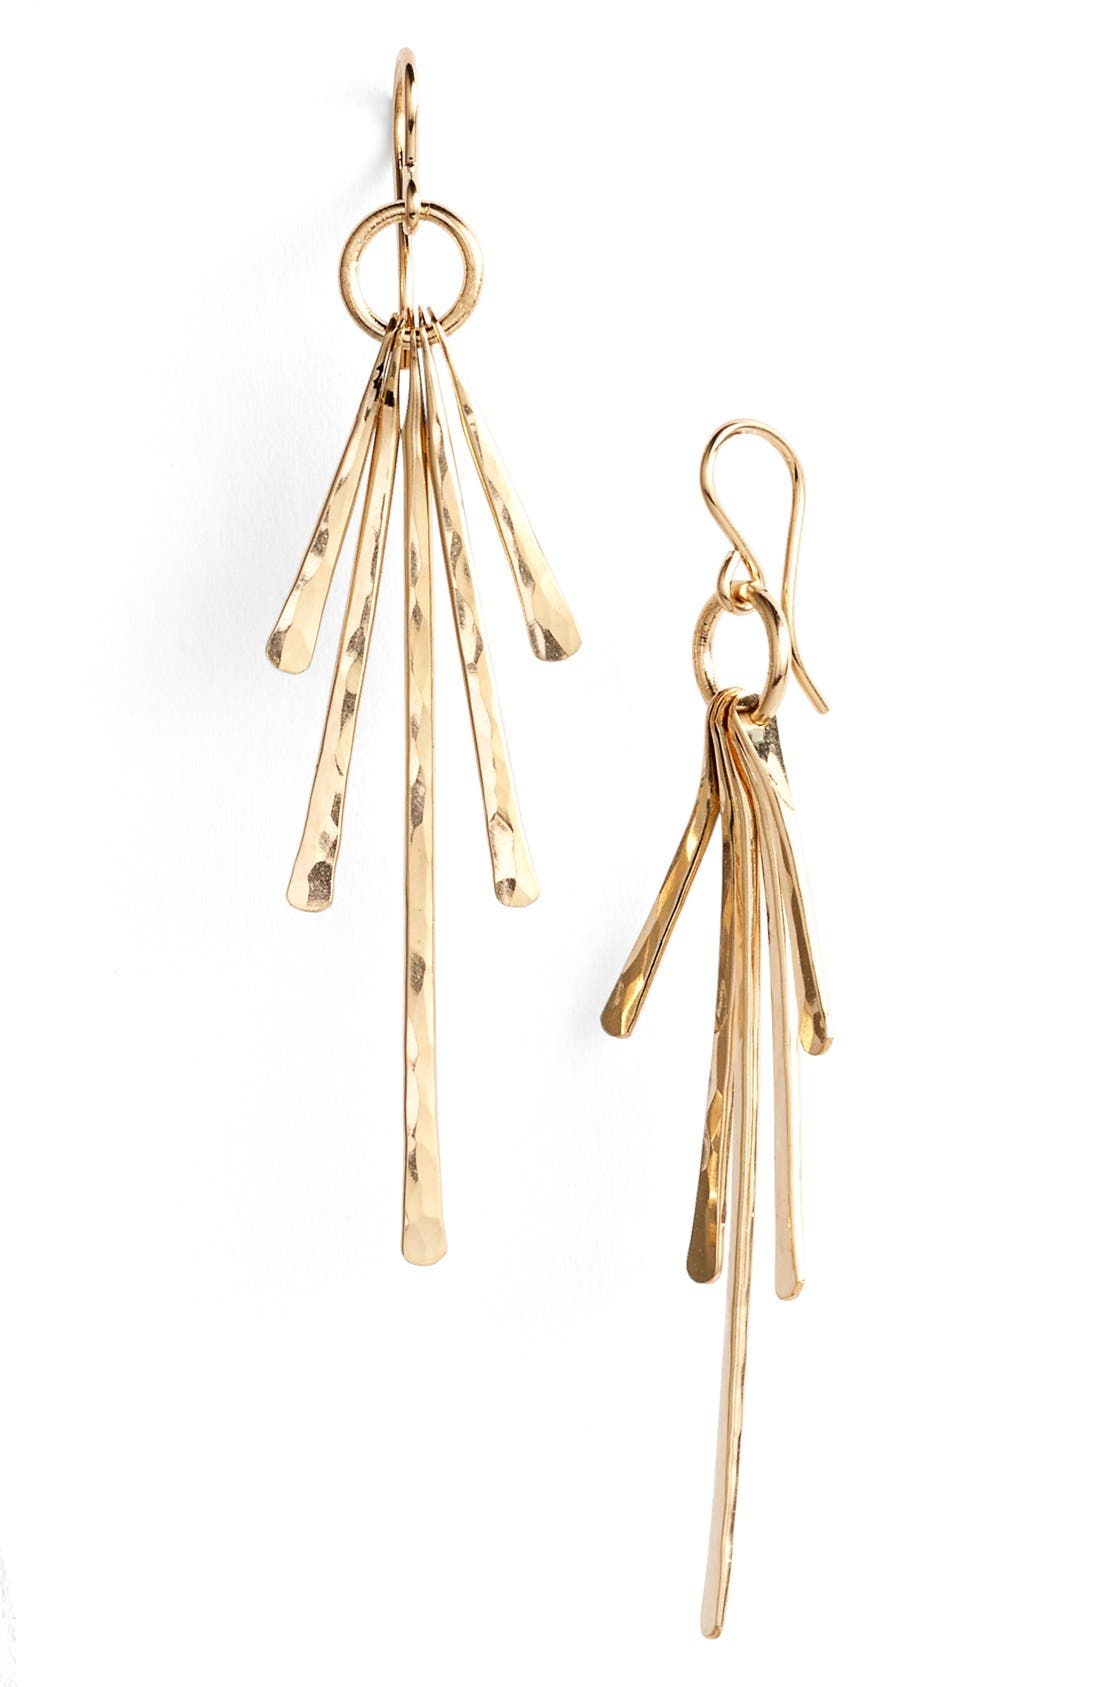 Ija Sunburst Drop Earrings,                         Main,                         color, 14K Gold Fill